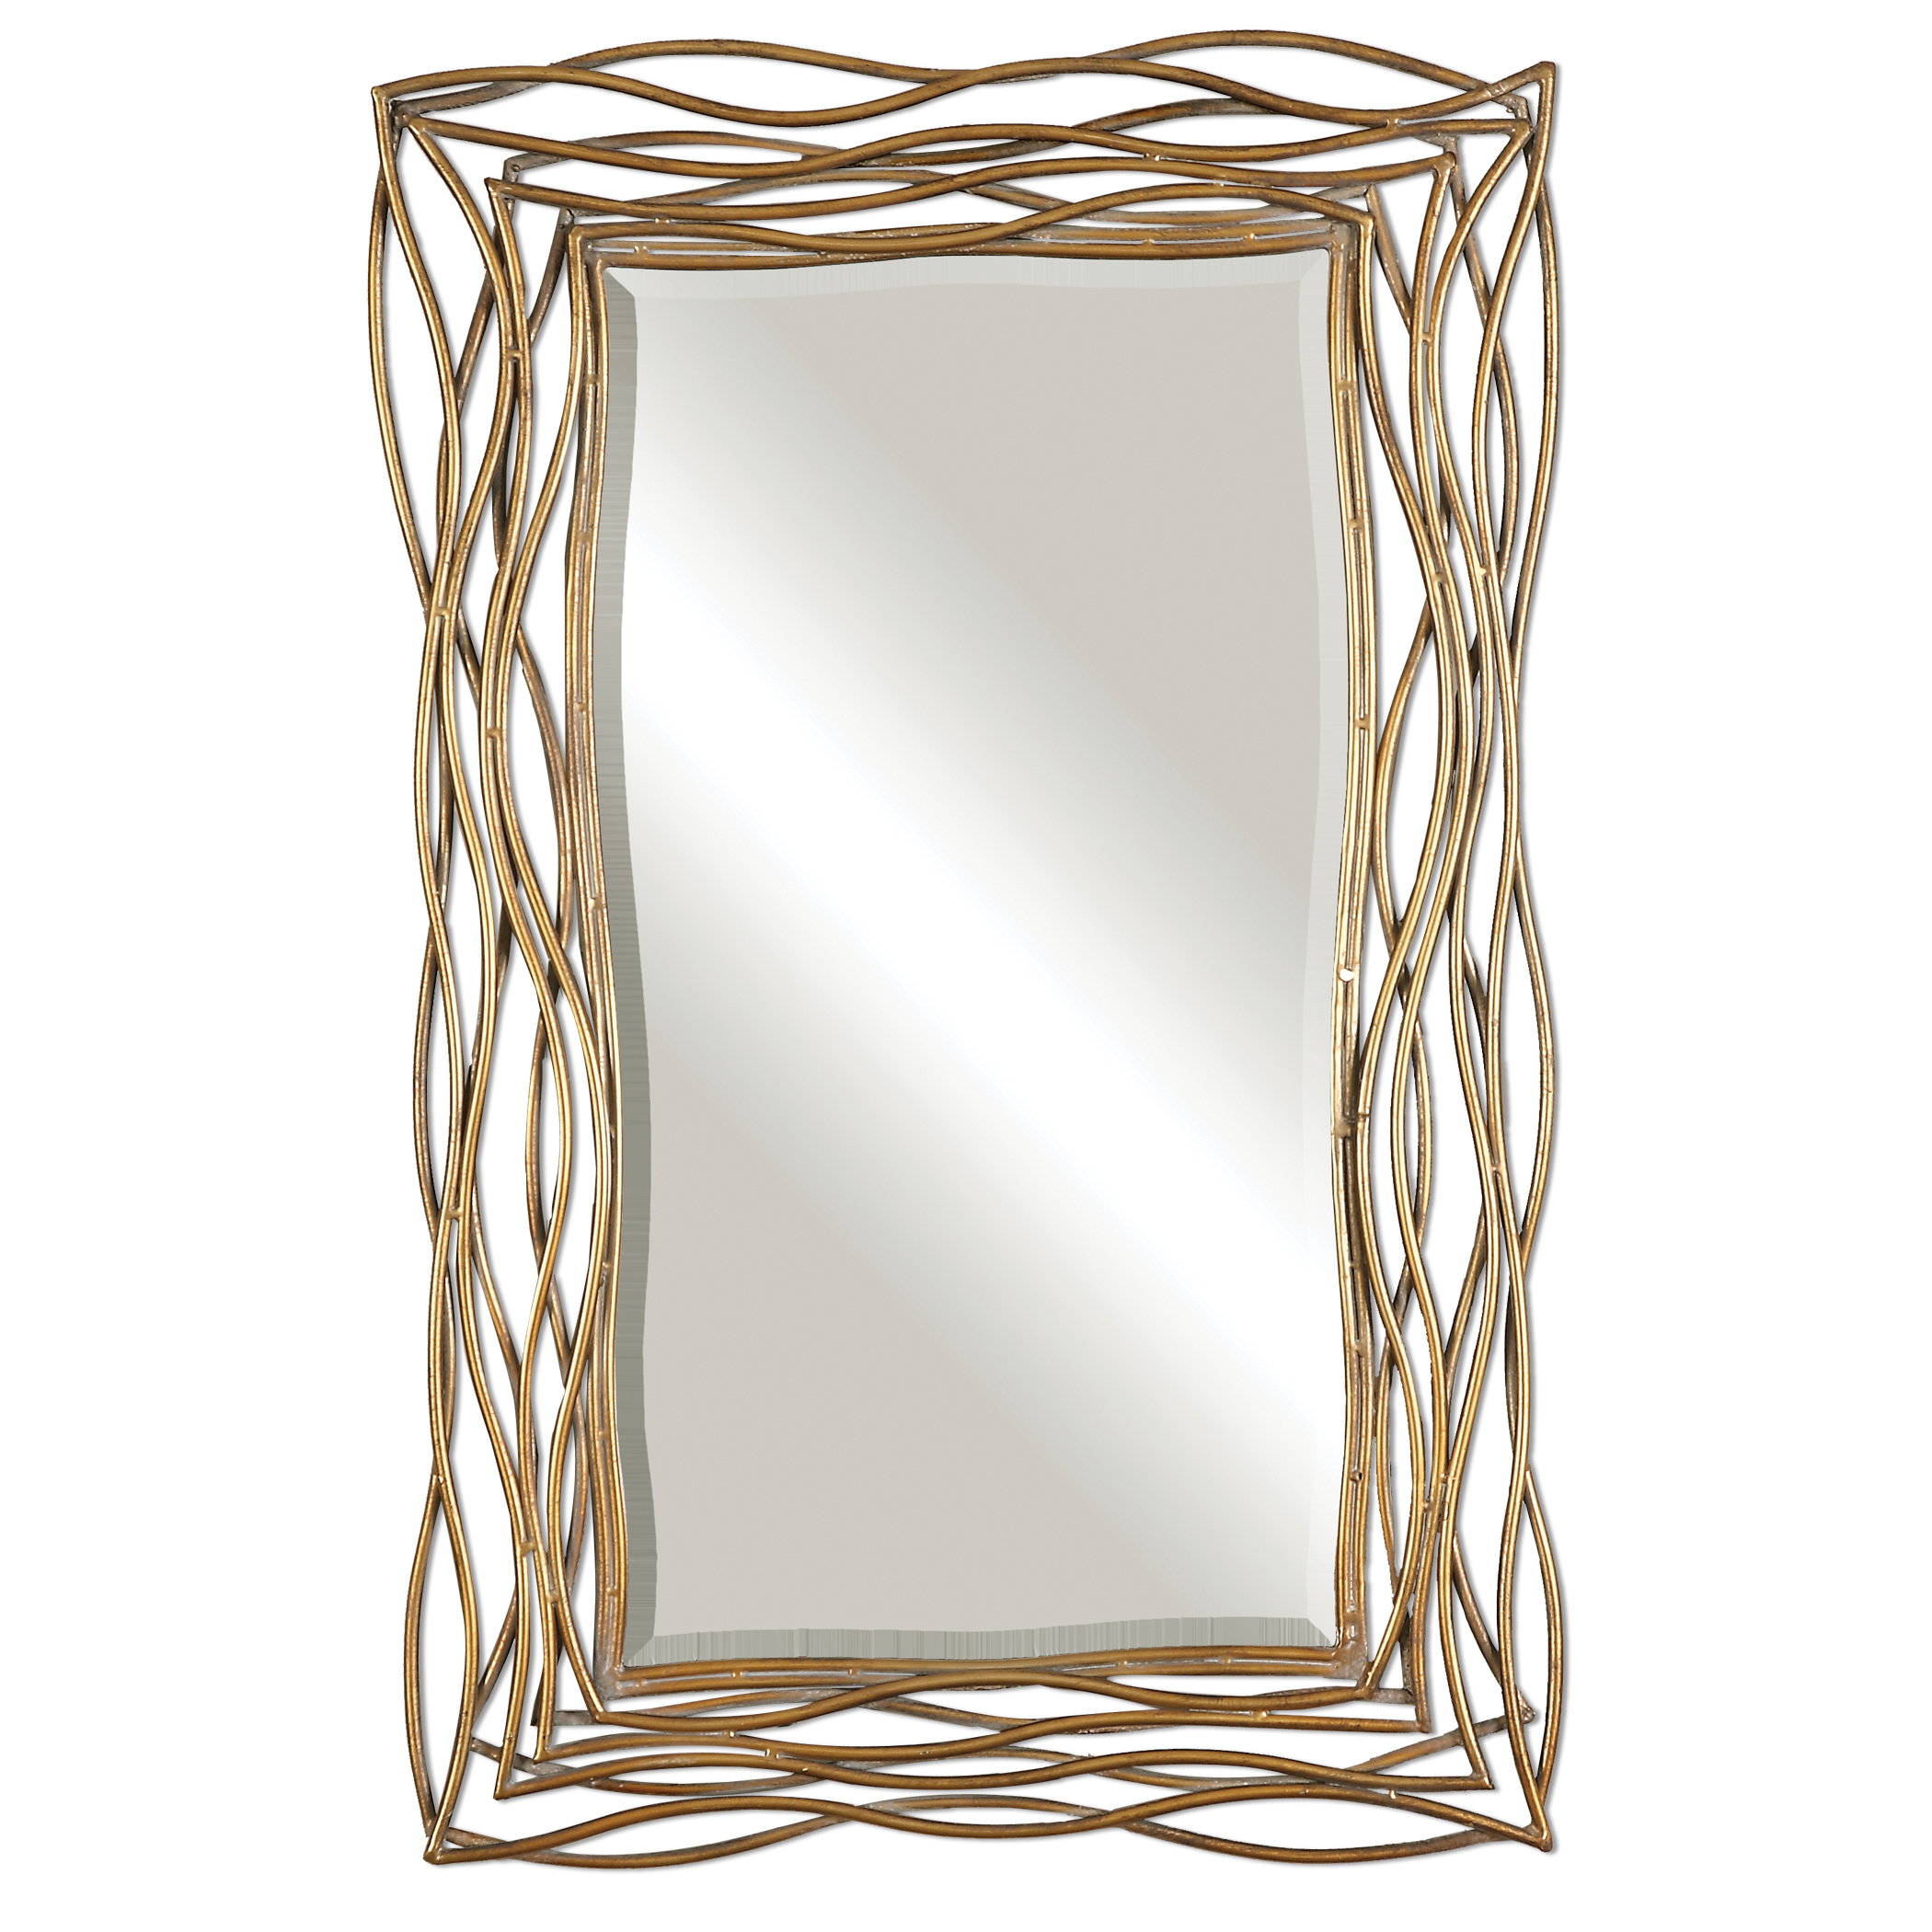 Uttermost Mirrors Tordera Oxidized Gold Mirror - Item Number: 12940